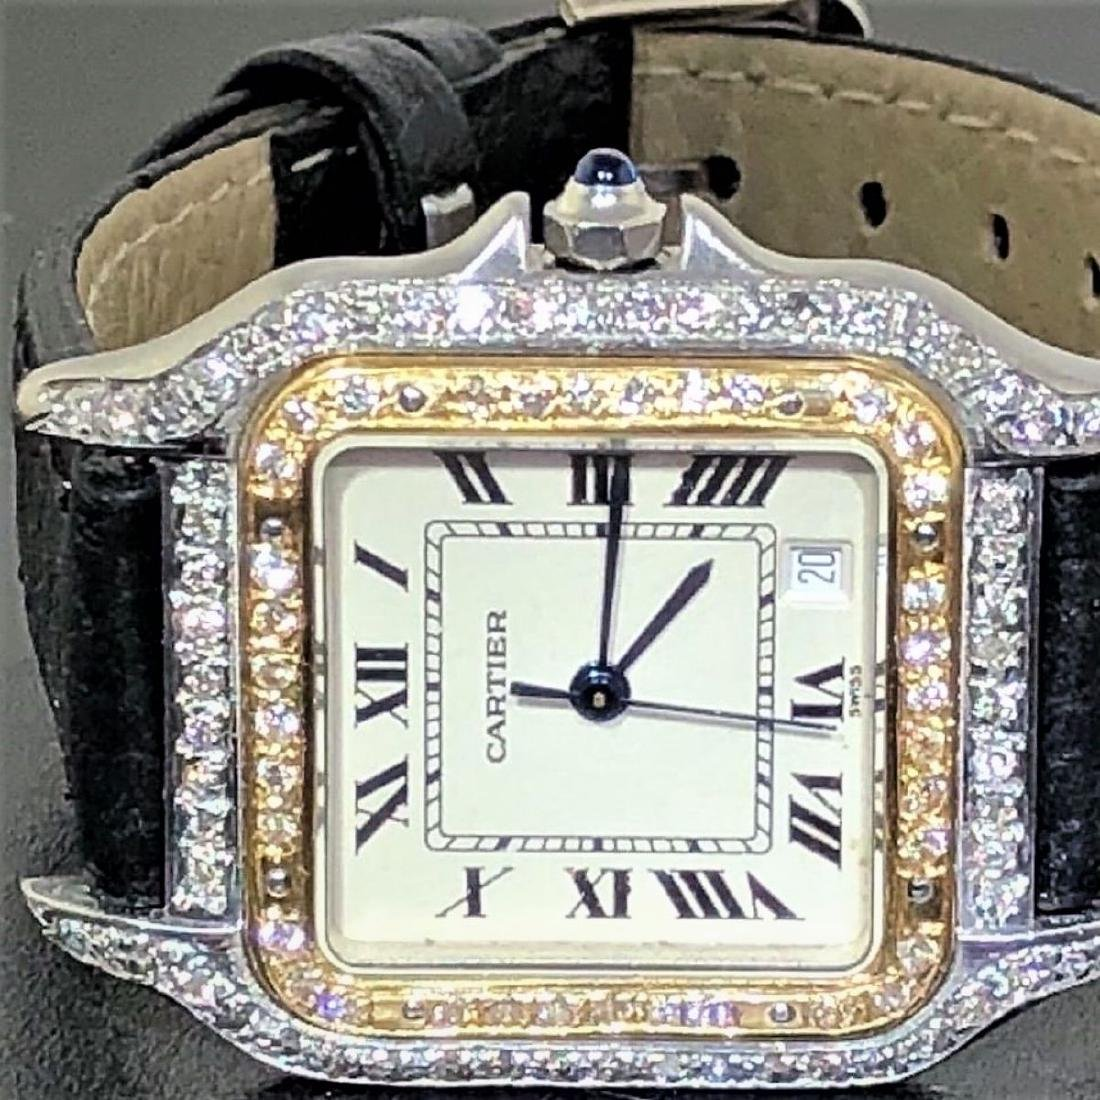 SS PANTHERE UNISEX TWO-TONE MENS MIDSIZE DIAMONDS 18K